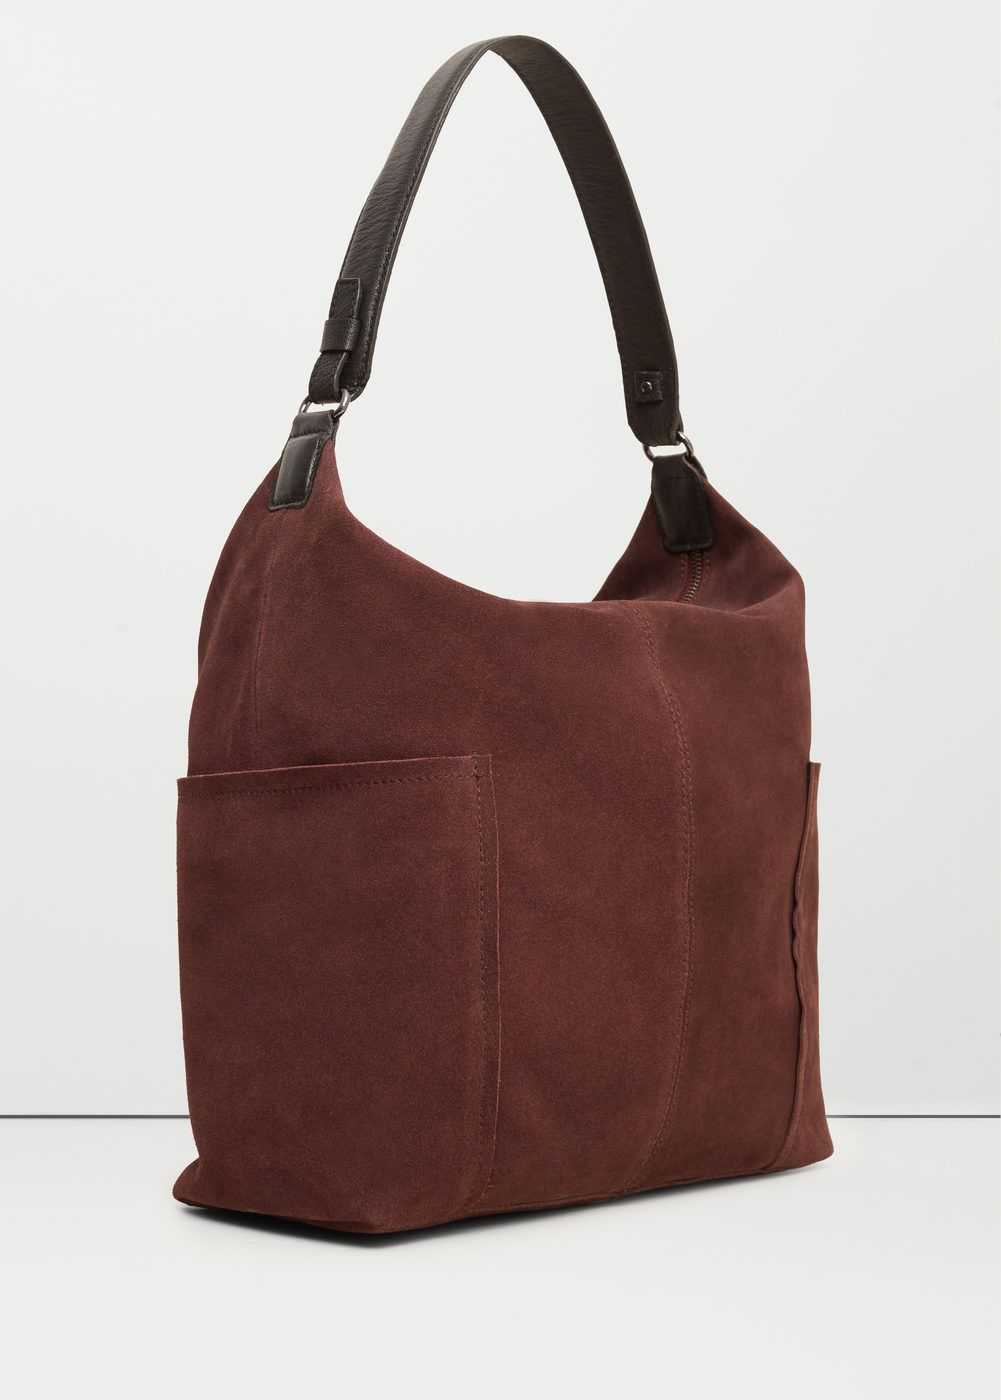 725af4162 Bolso hobo piel - Mujer | Bolsos | Bags, Mango outlet y Leather